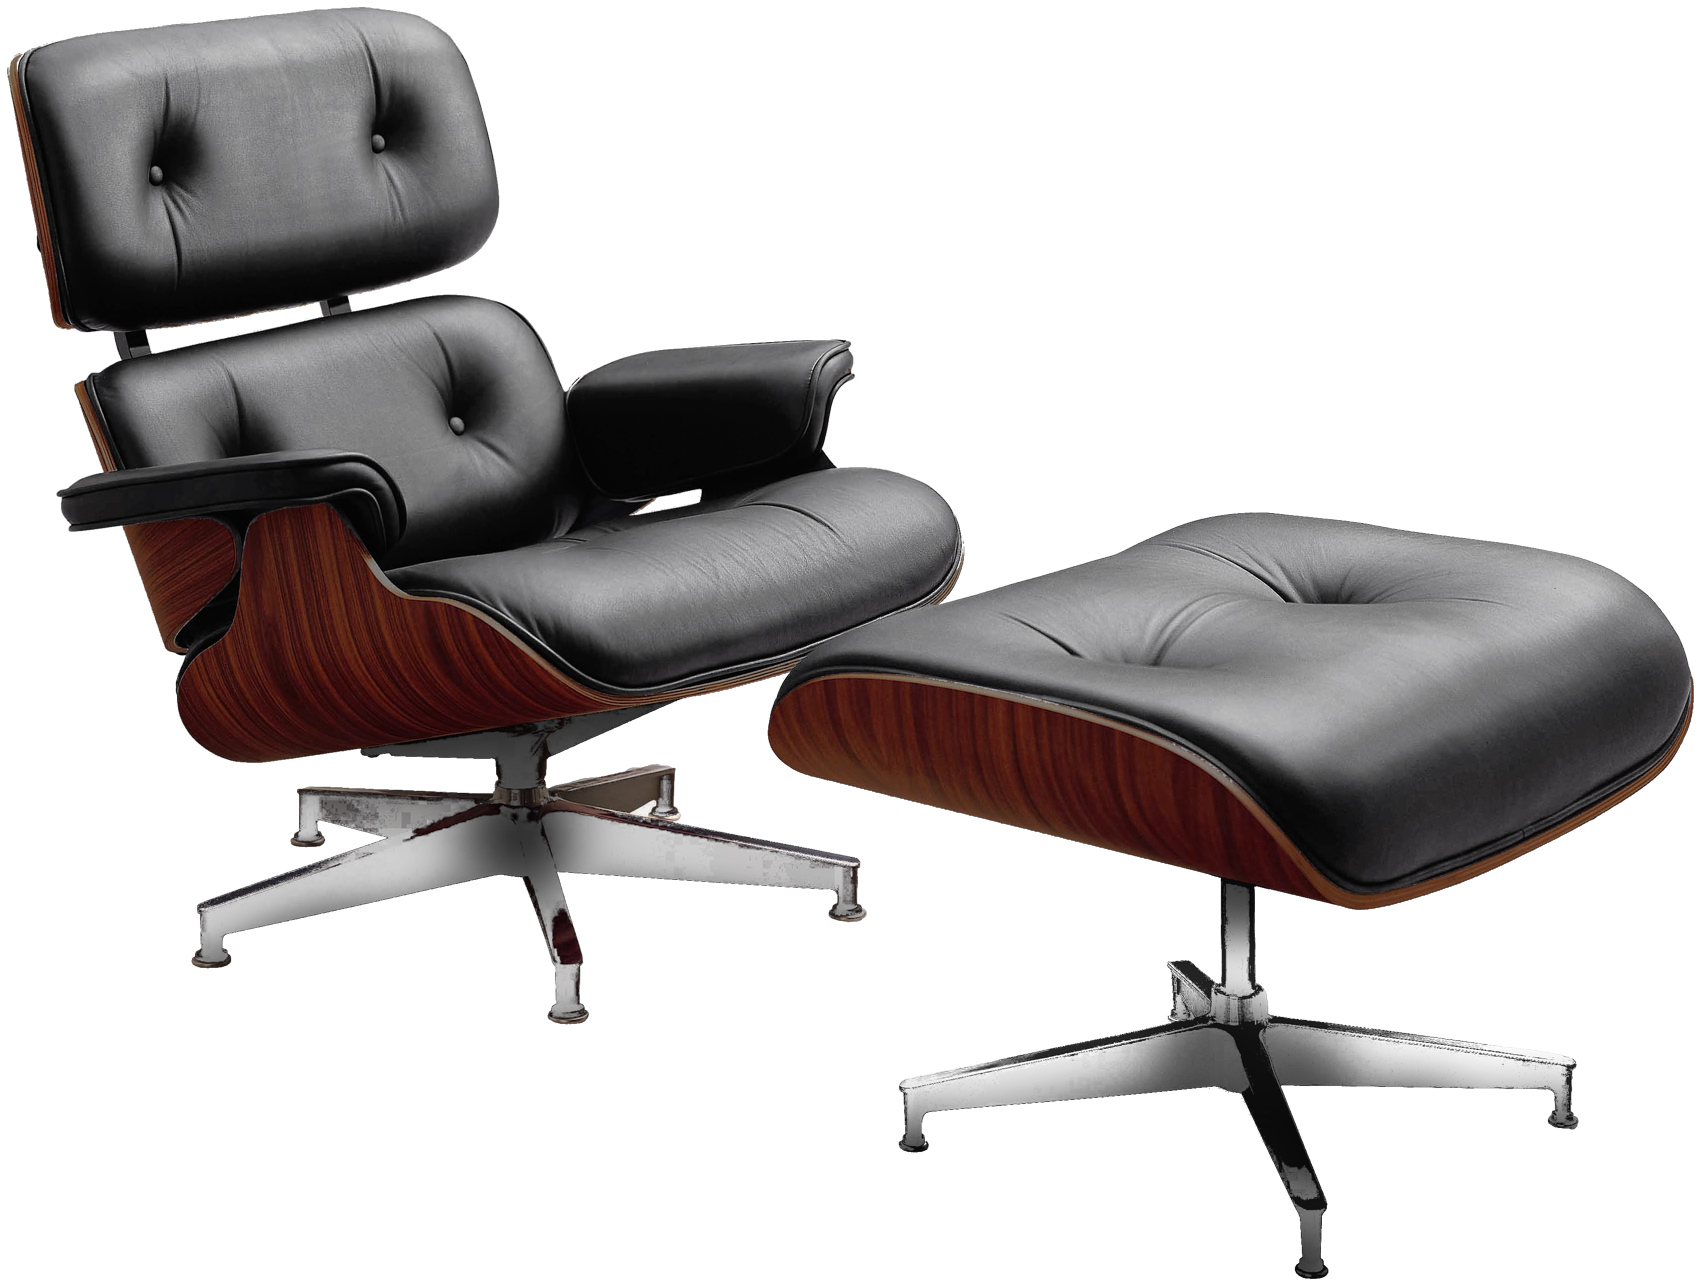 Best Chair Company Recliner Charles Eames Style leather lounge chair | Specialist Furniture ...